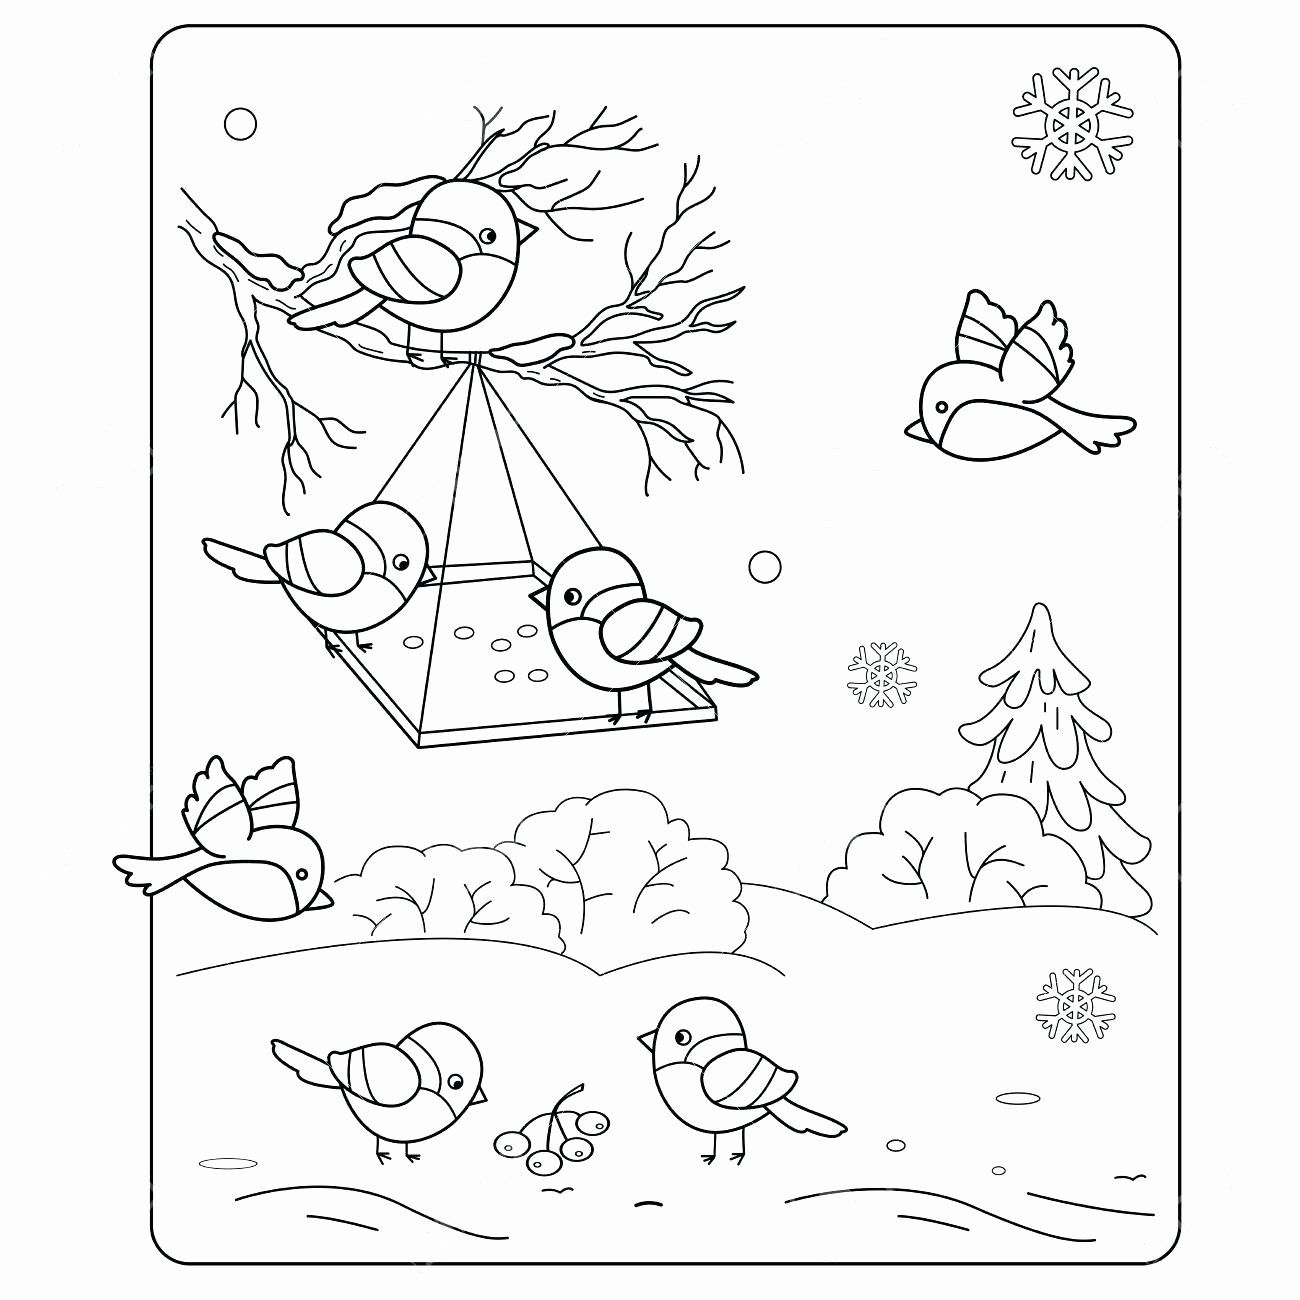 Winter Wonderland Coloring Sheets Awesome Coloring Pictures Of Winter Bestofpage Coloring Pages Winter Bird Coloring Pages Coloring Pages